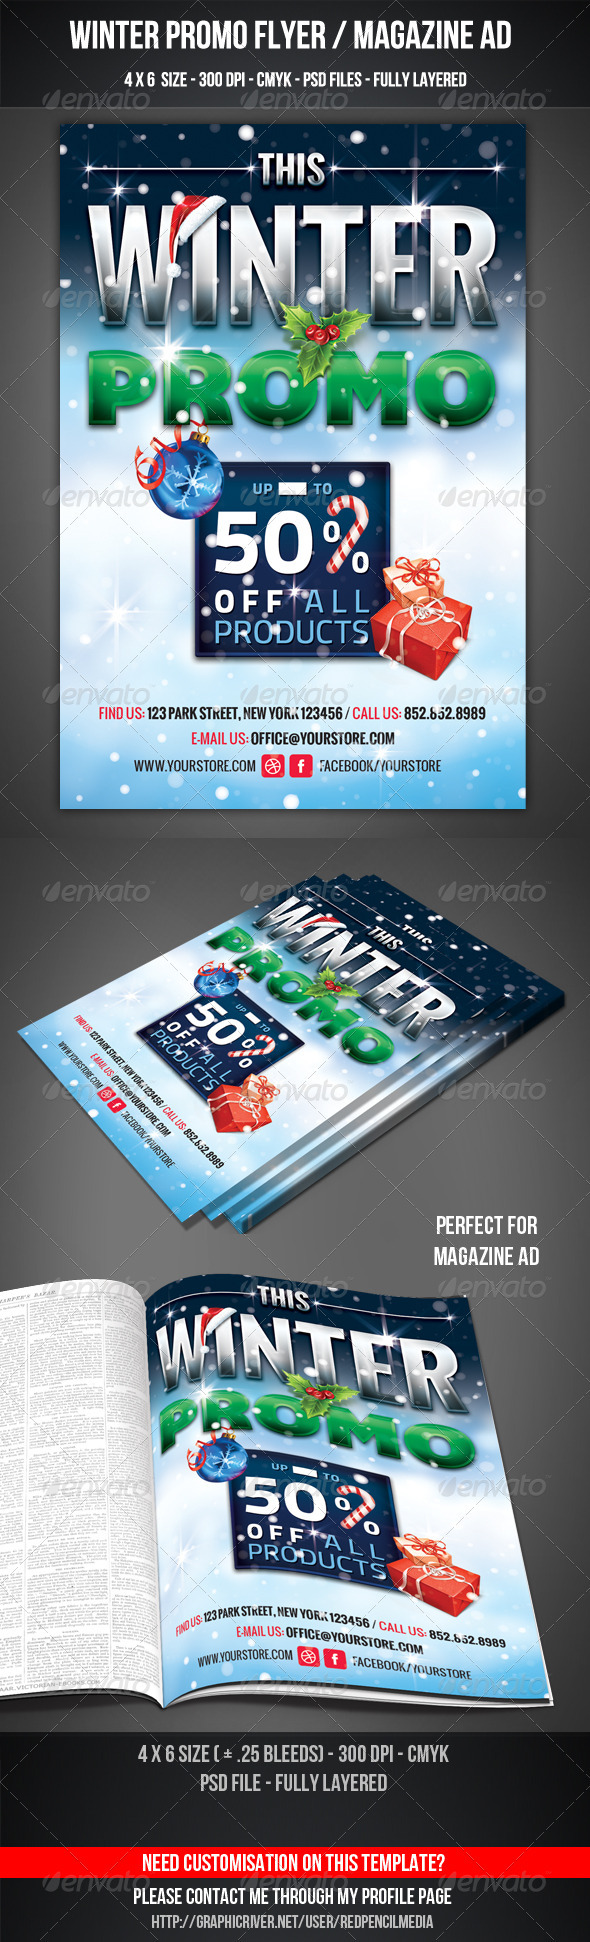 Winter Promo Flyer / Magazine AD - Commerce Flyers